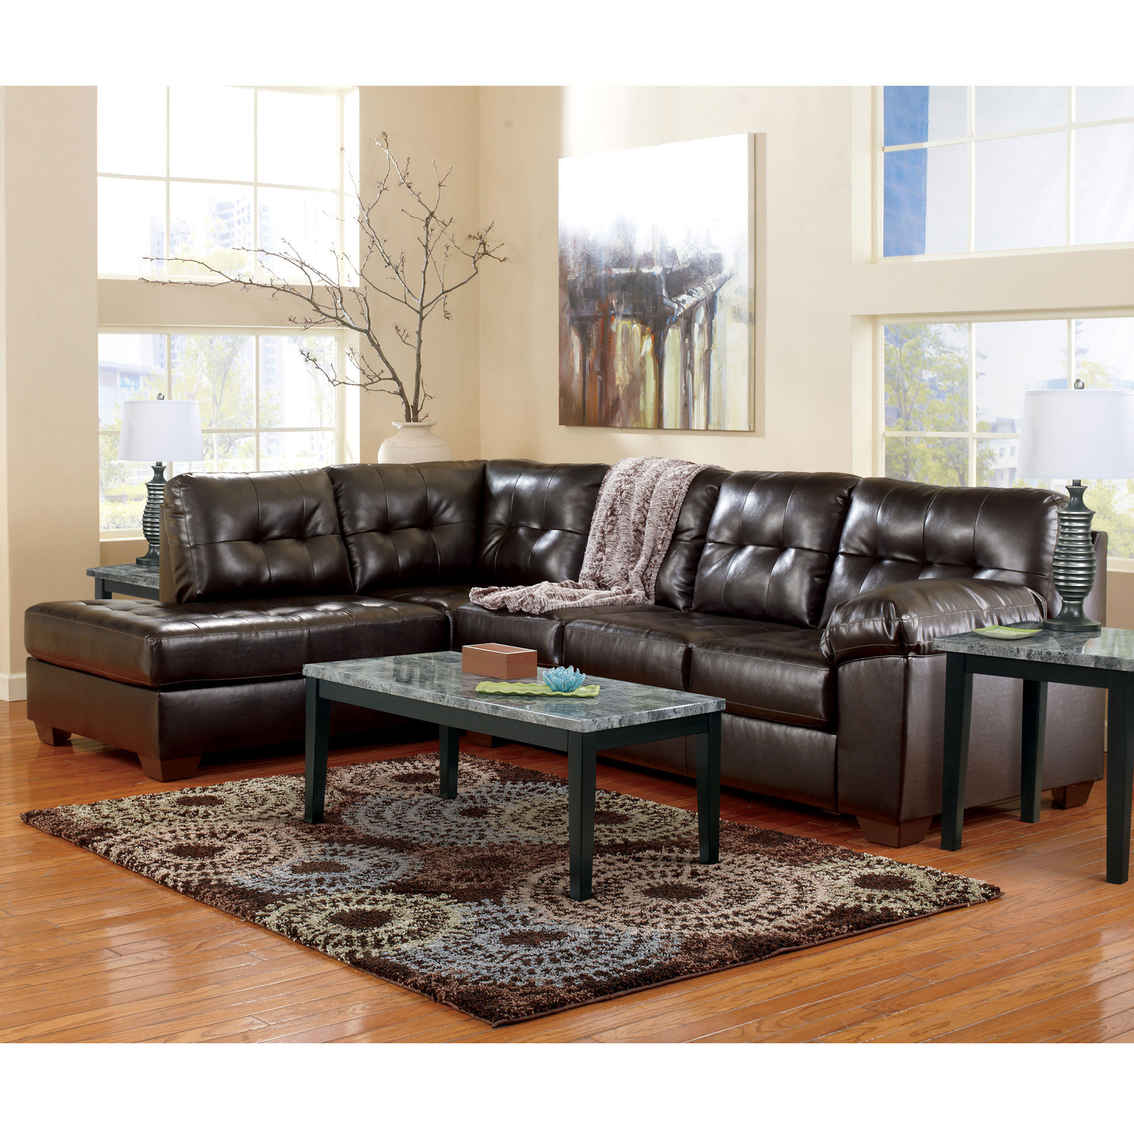 Signature design by ashley alliston durablend 2 pc for Ashley chaise sectional